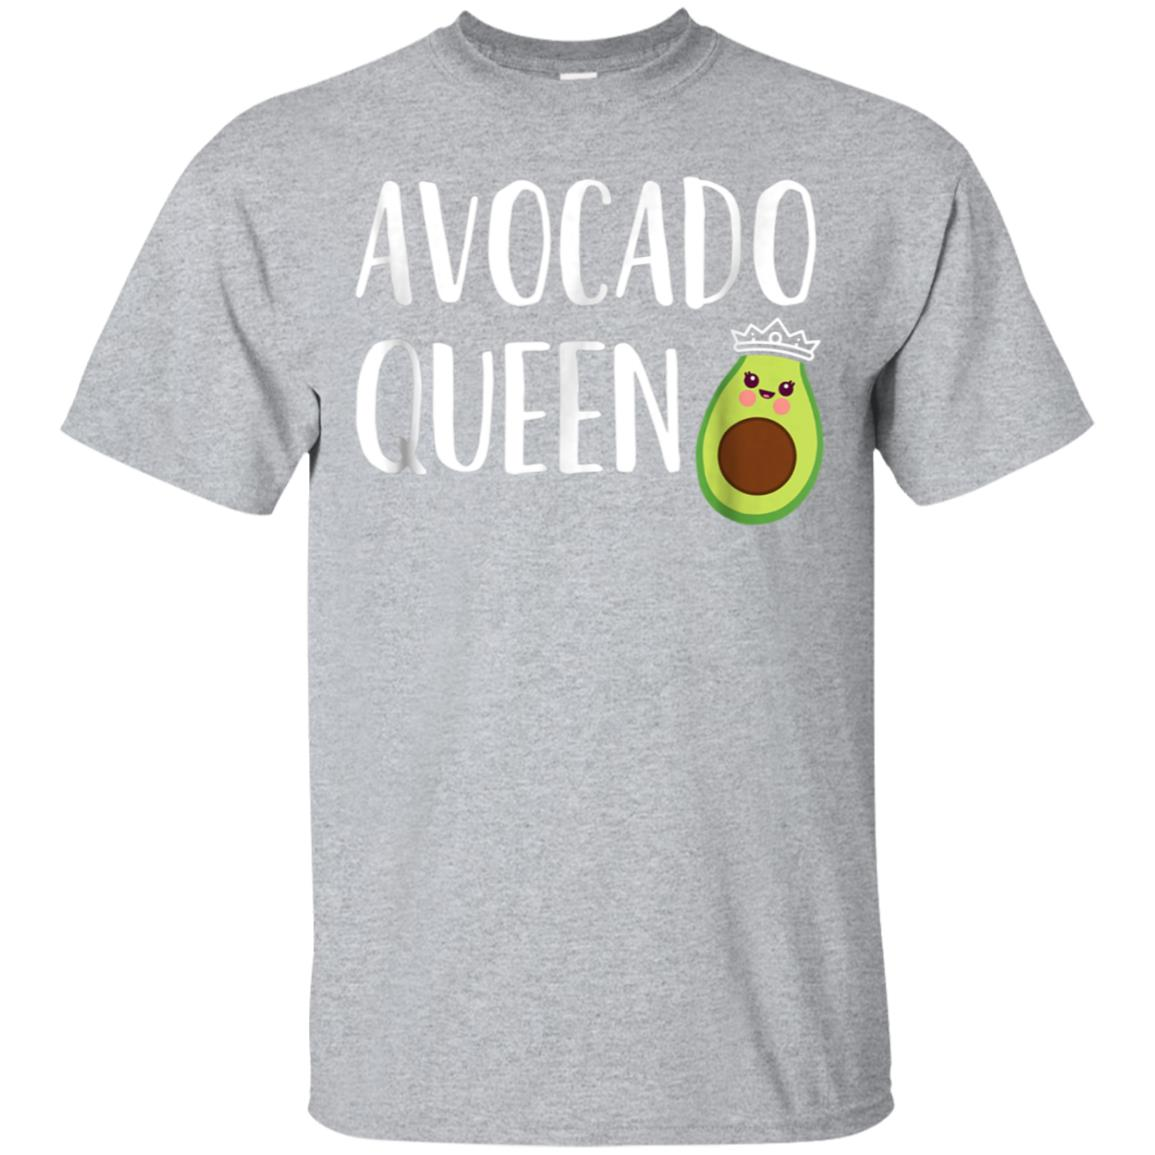 Avocado T Shirt Funny Avocado Themed Gift Women Girls 99promocode